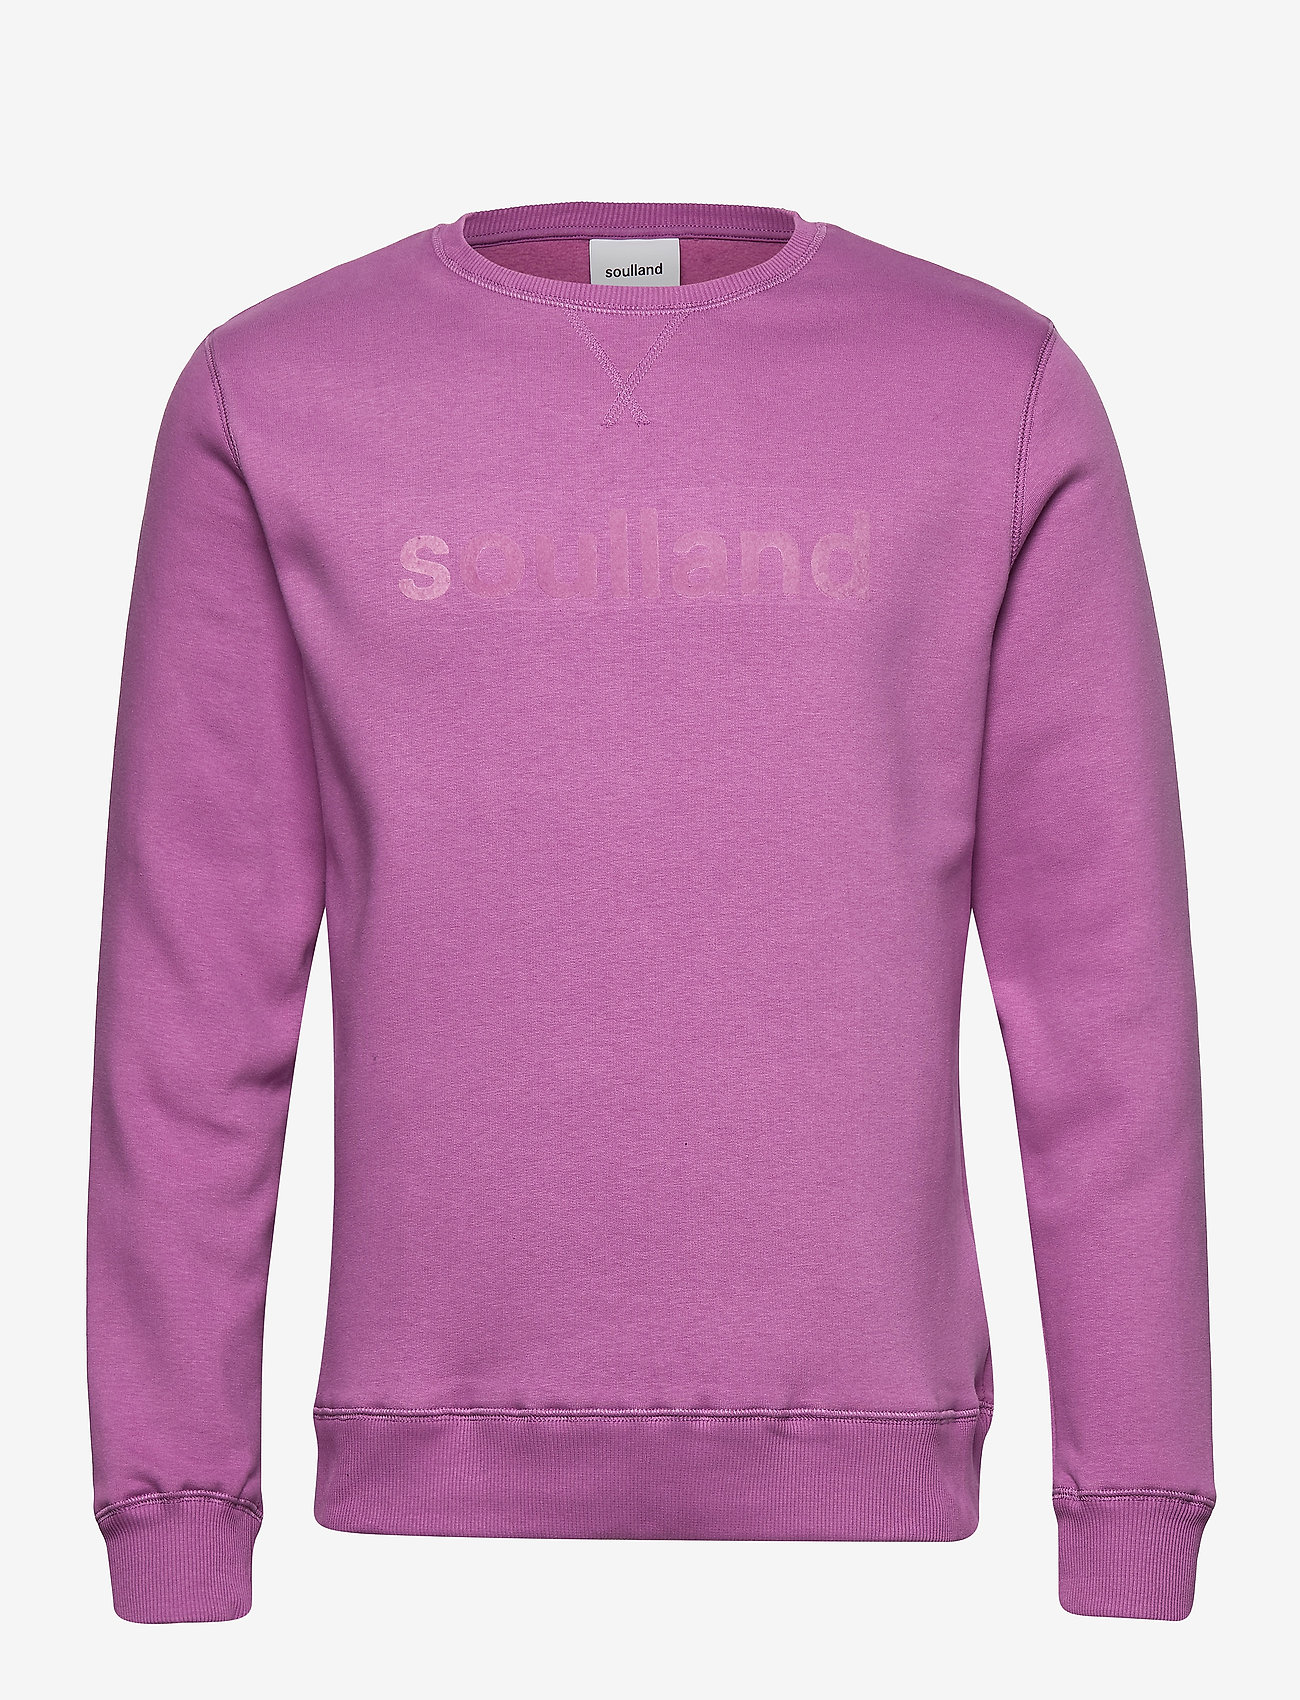 Soulland - LOGIC WILLIE SWEAT W. FRONT FLOCK PRINT - sweatshirts - purple